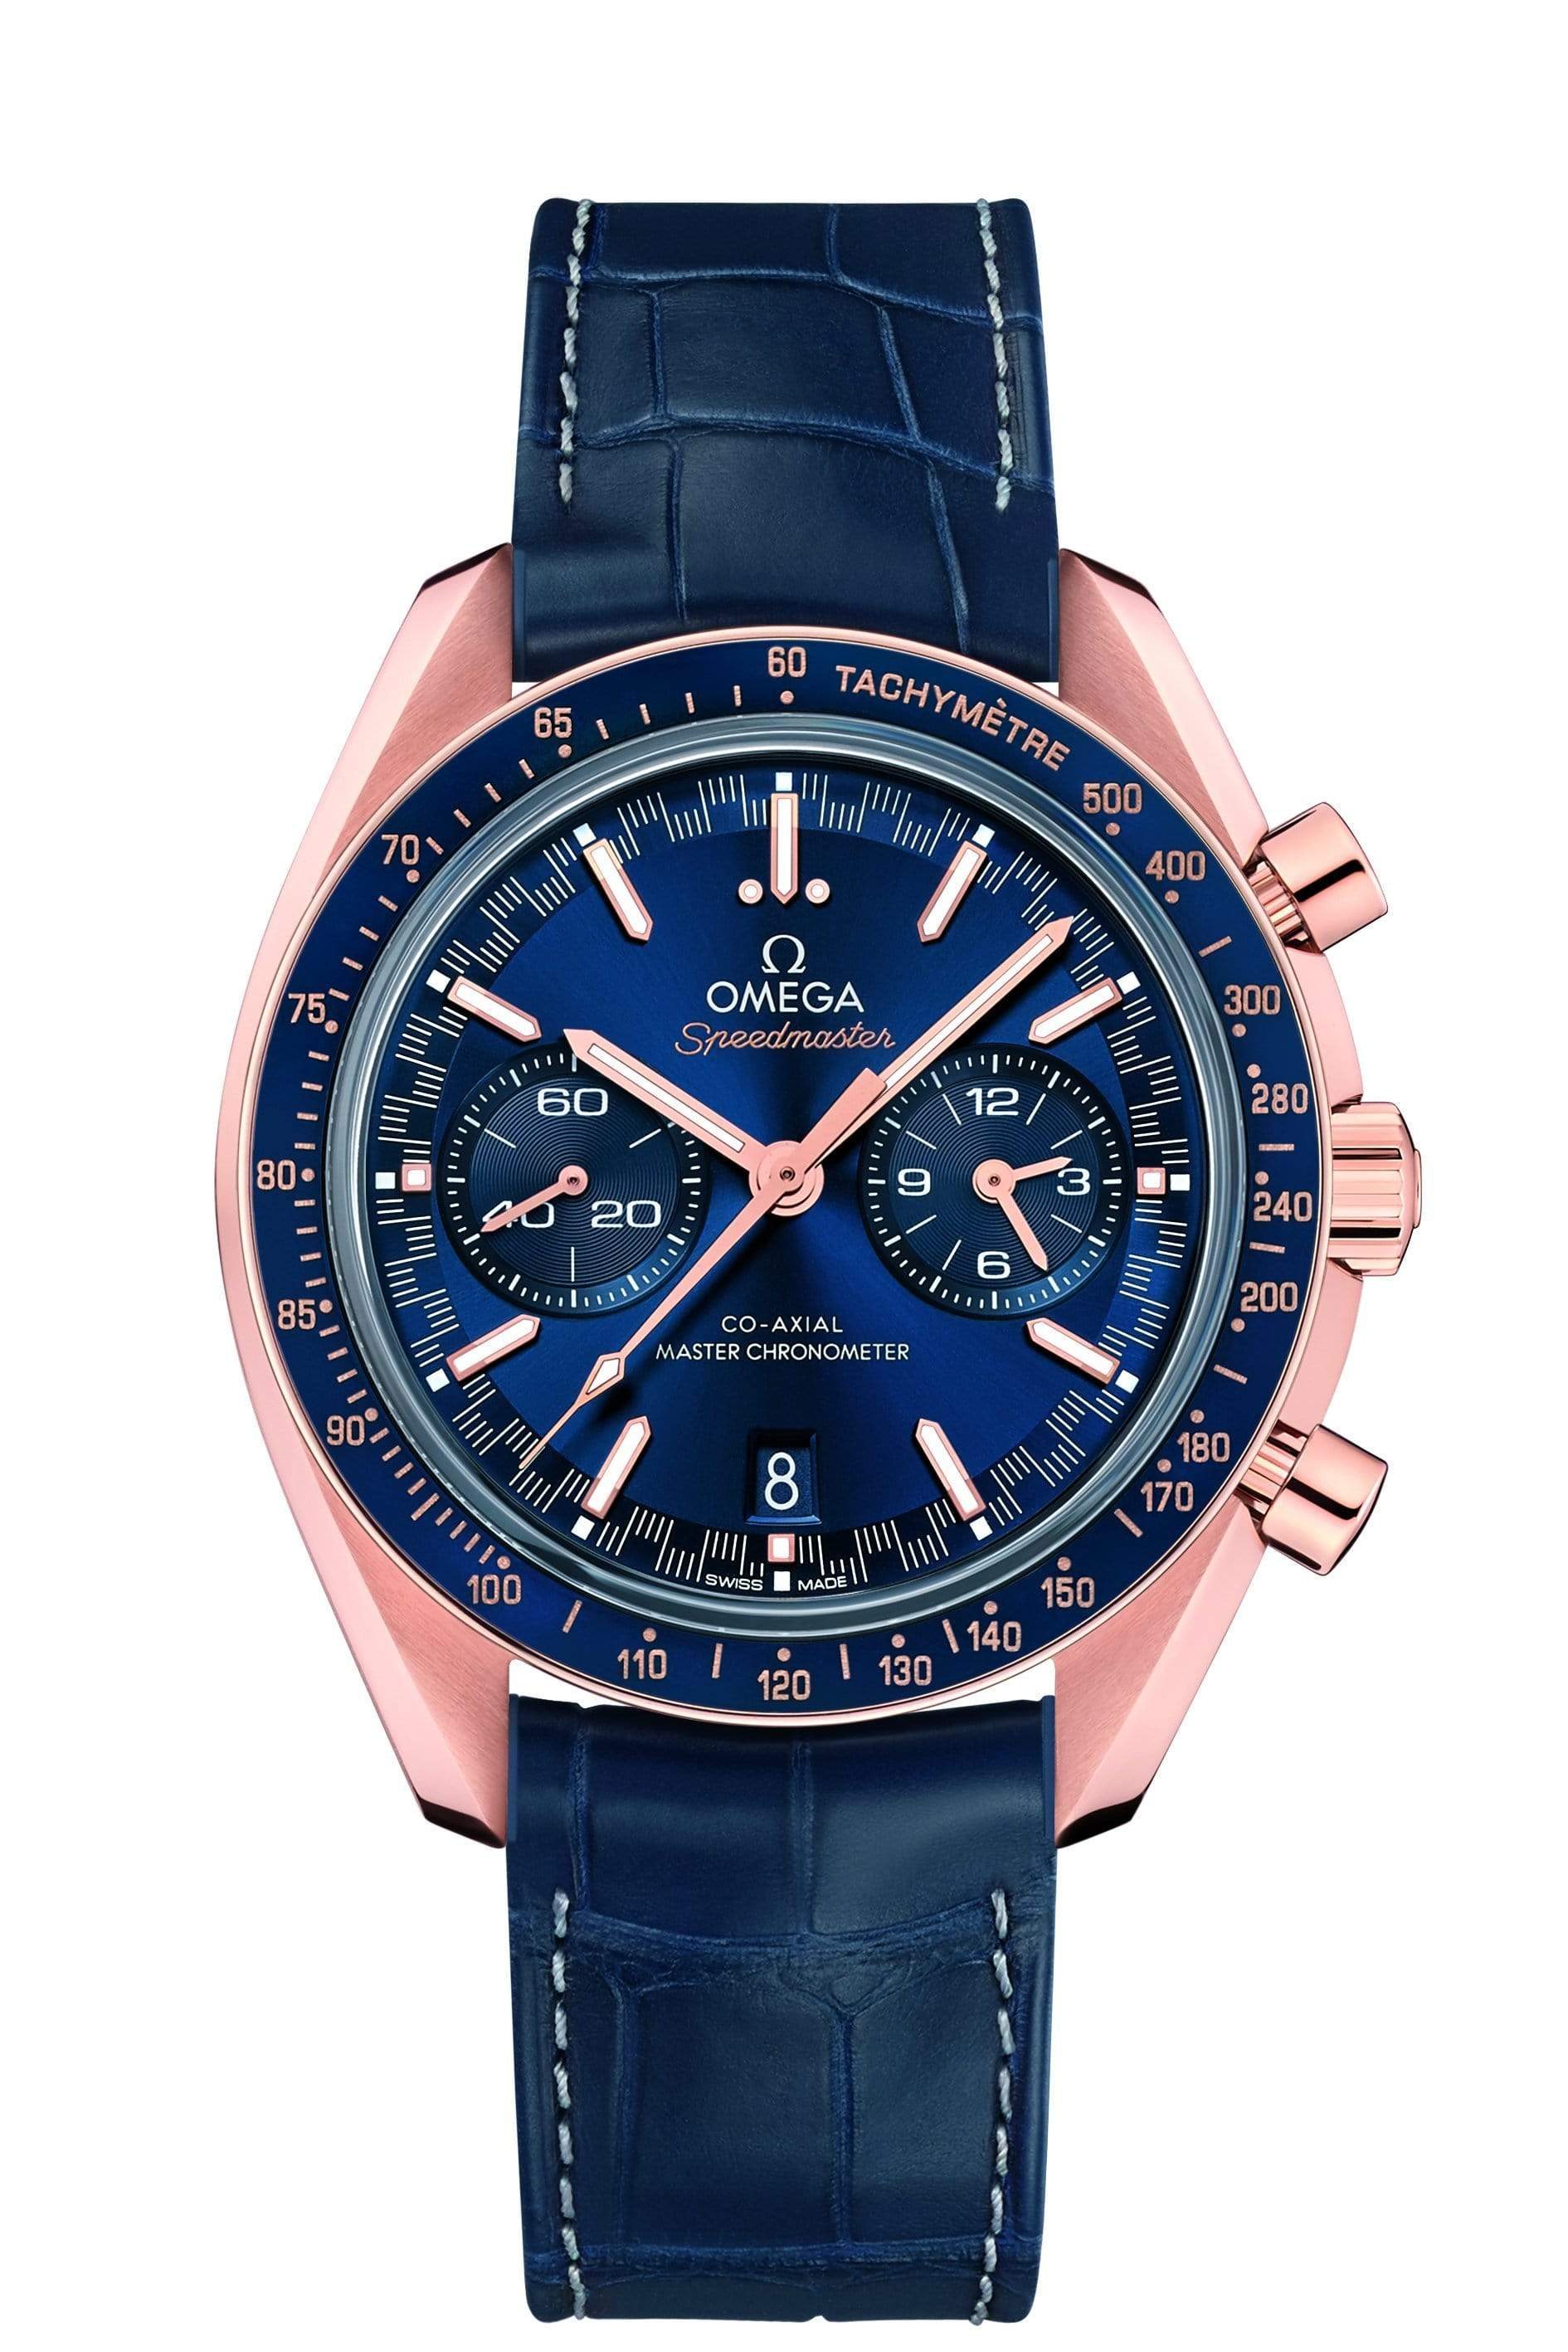 OMEGA Watch OMEGA Speedmaster Racing Watch